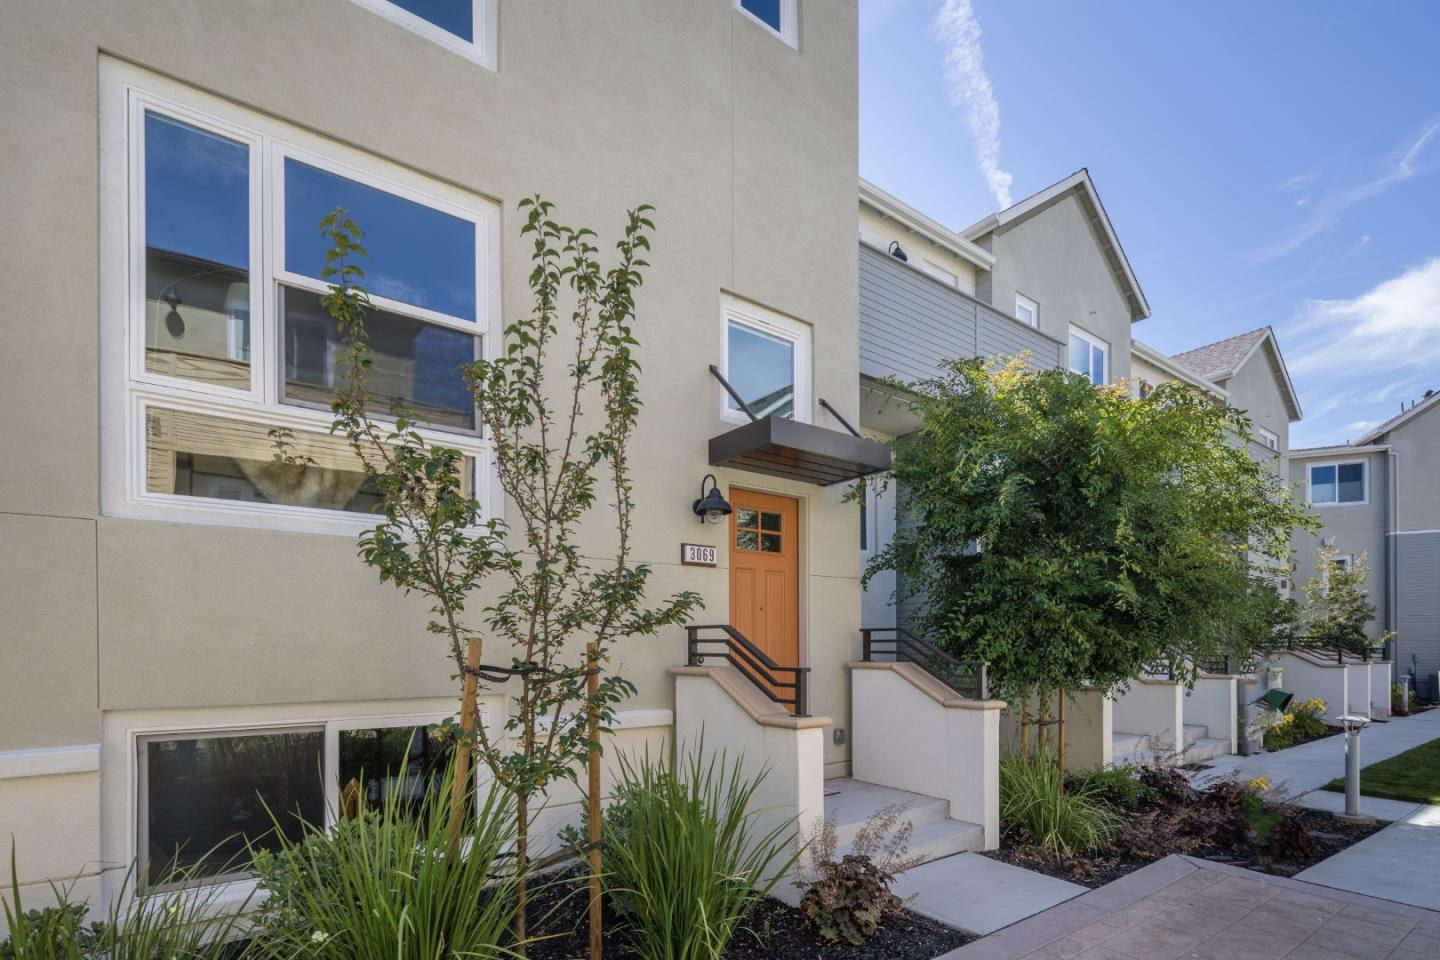 3069 Neves Road San Mateo, CA 94403 - MLS #: ML81718585